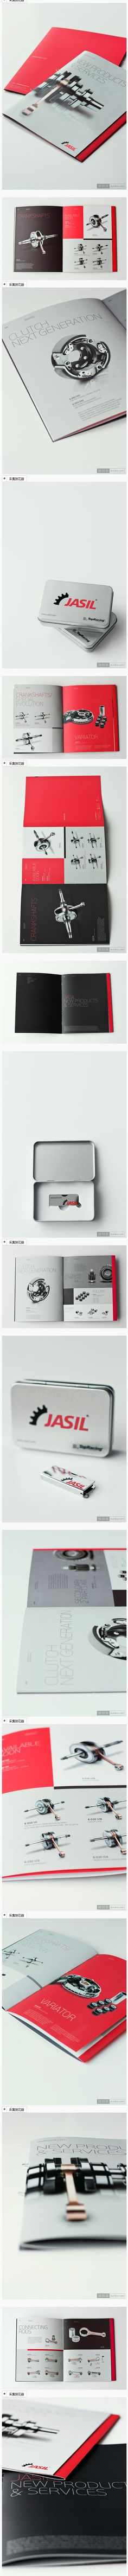 Grid Design, Graphic Design, Catalog Design, Logo Branding, Logos, Design Reference, Brochure Design, Editorial Design, Creative Design